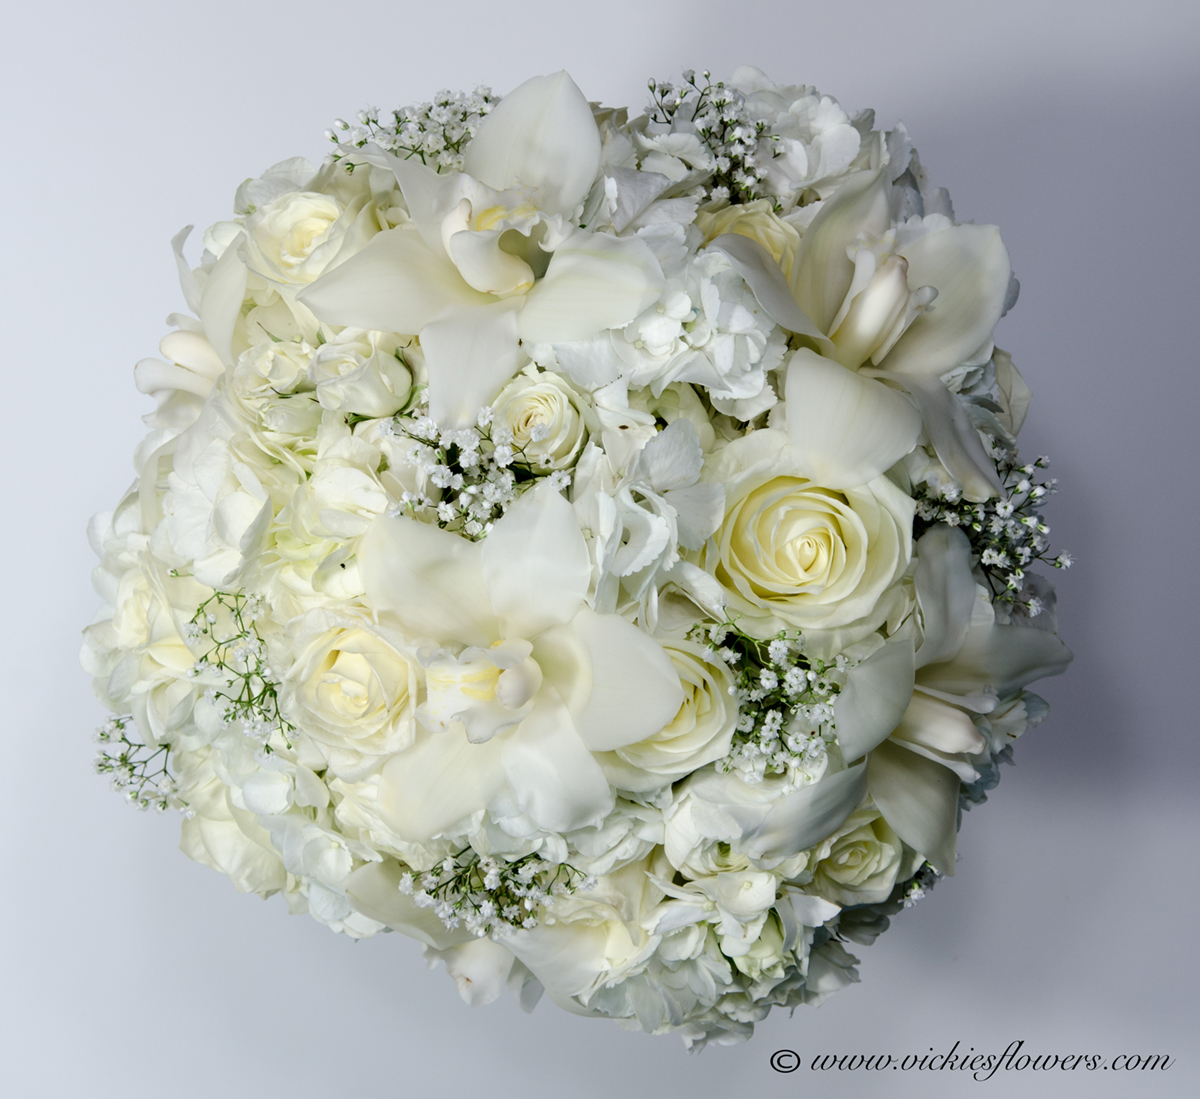 Wedding Bouquets | Vickies Flowers | Brighton Colorado Florist